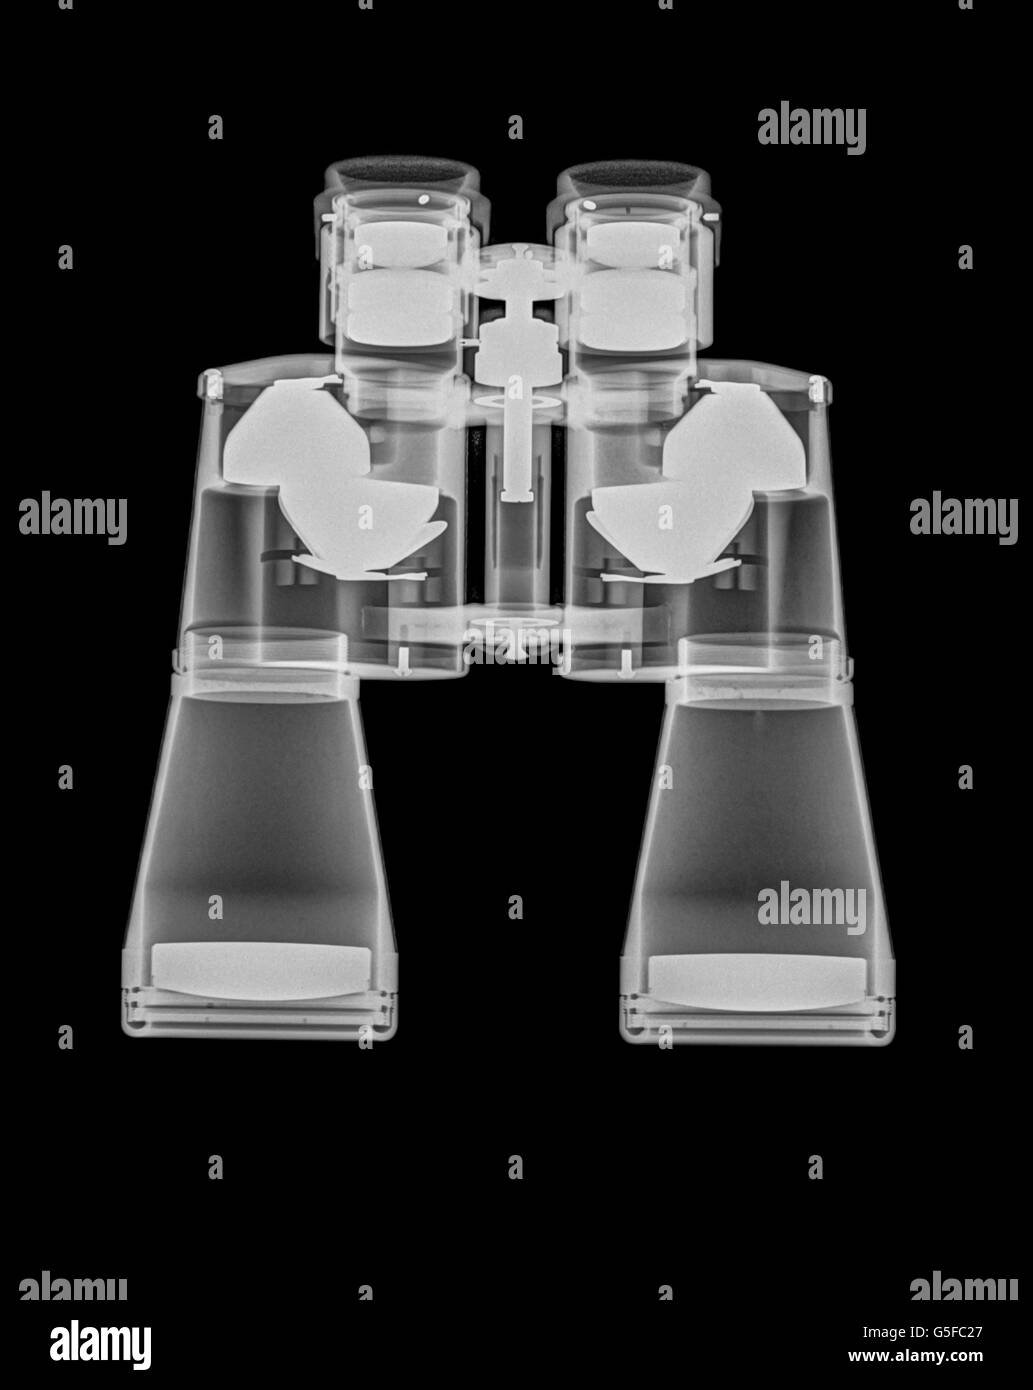 Binoculars under x-ray side view - Stock Image